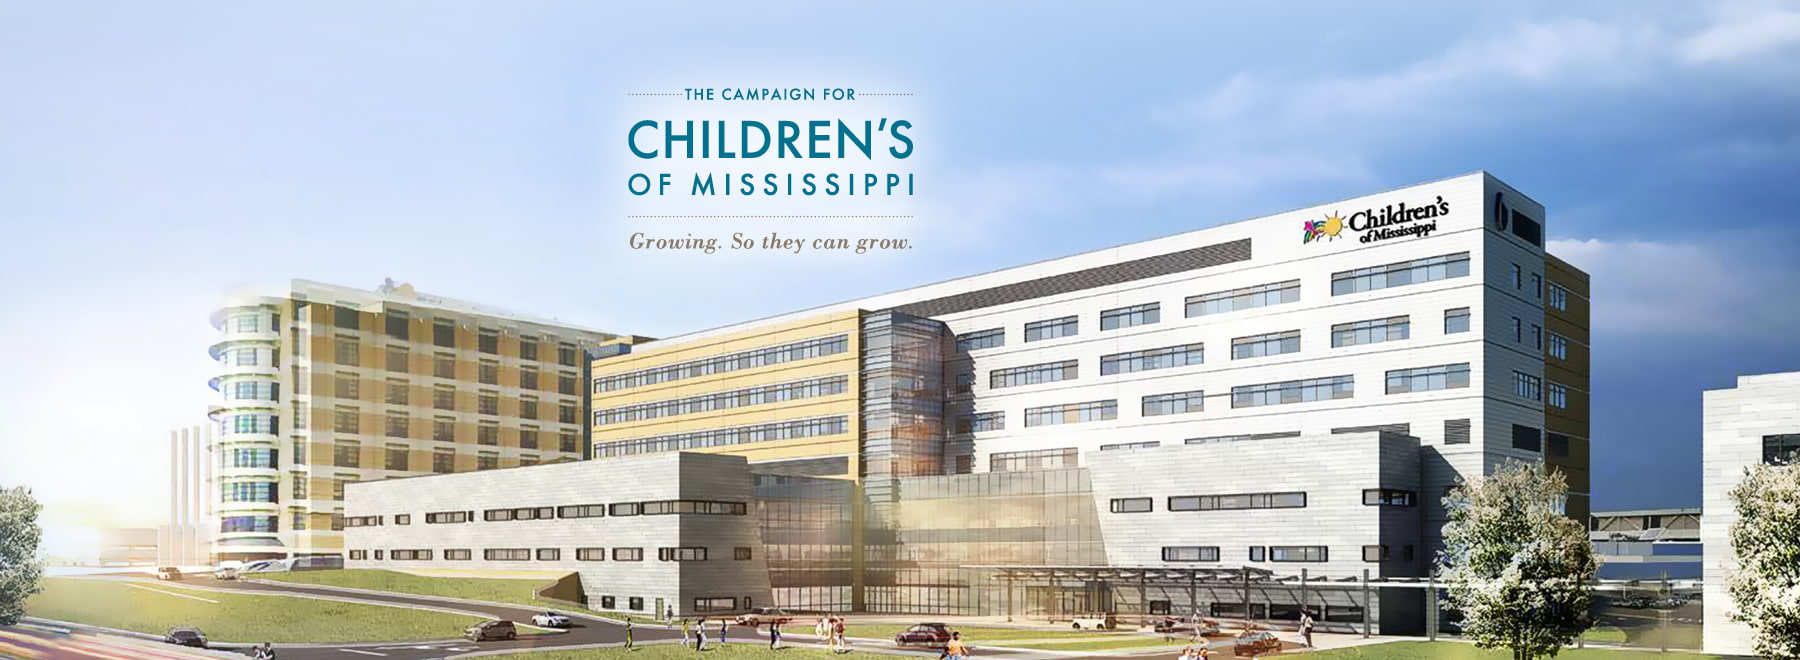 New Childrens Hospital Architect rendering.